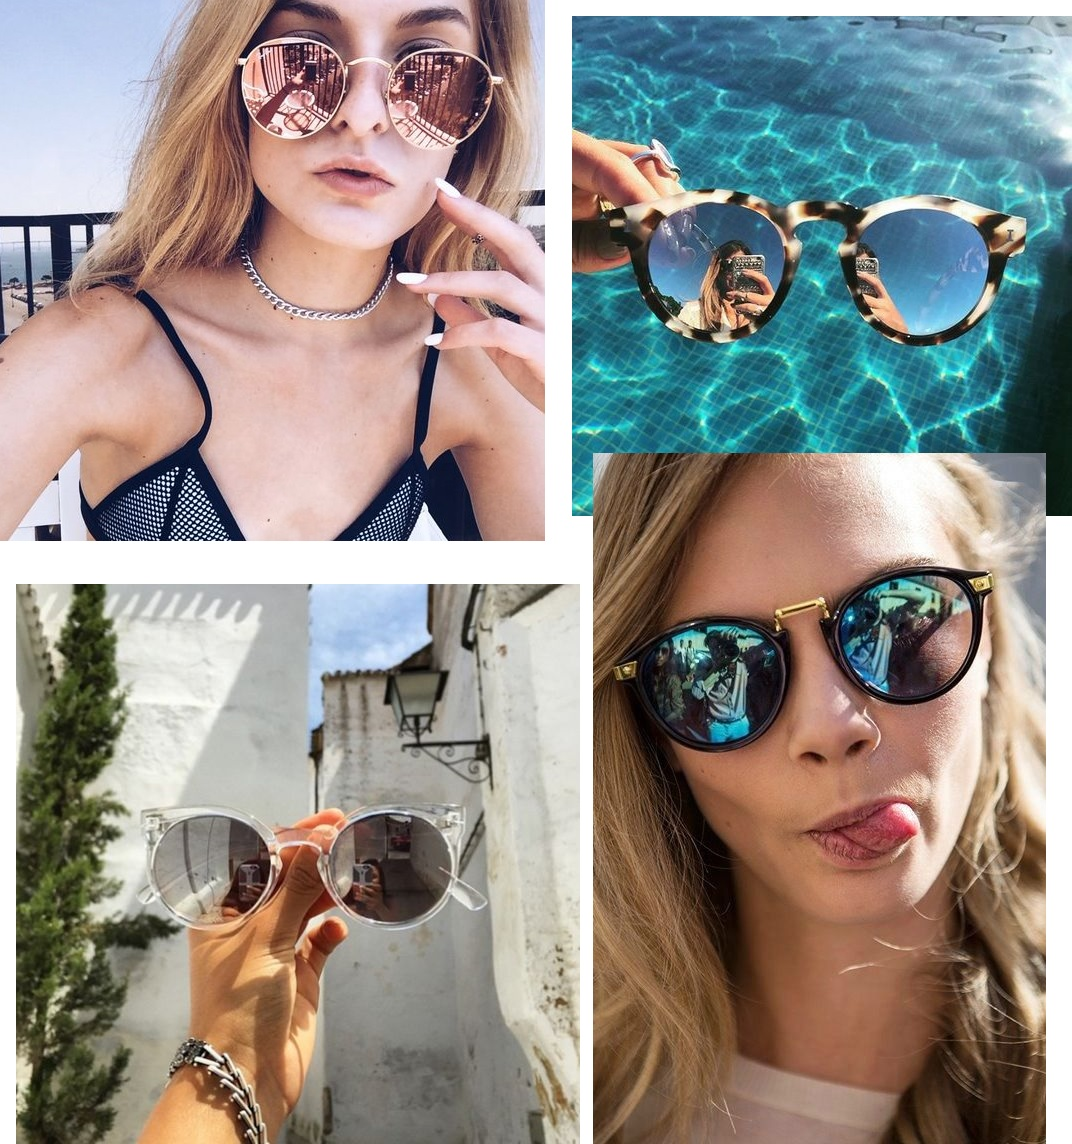 6. Sunglasses summer trend 2016